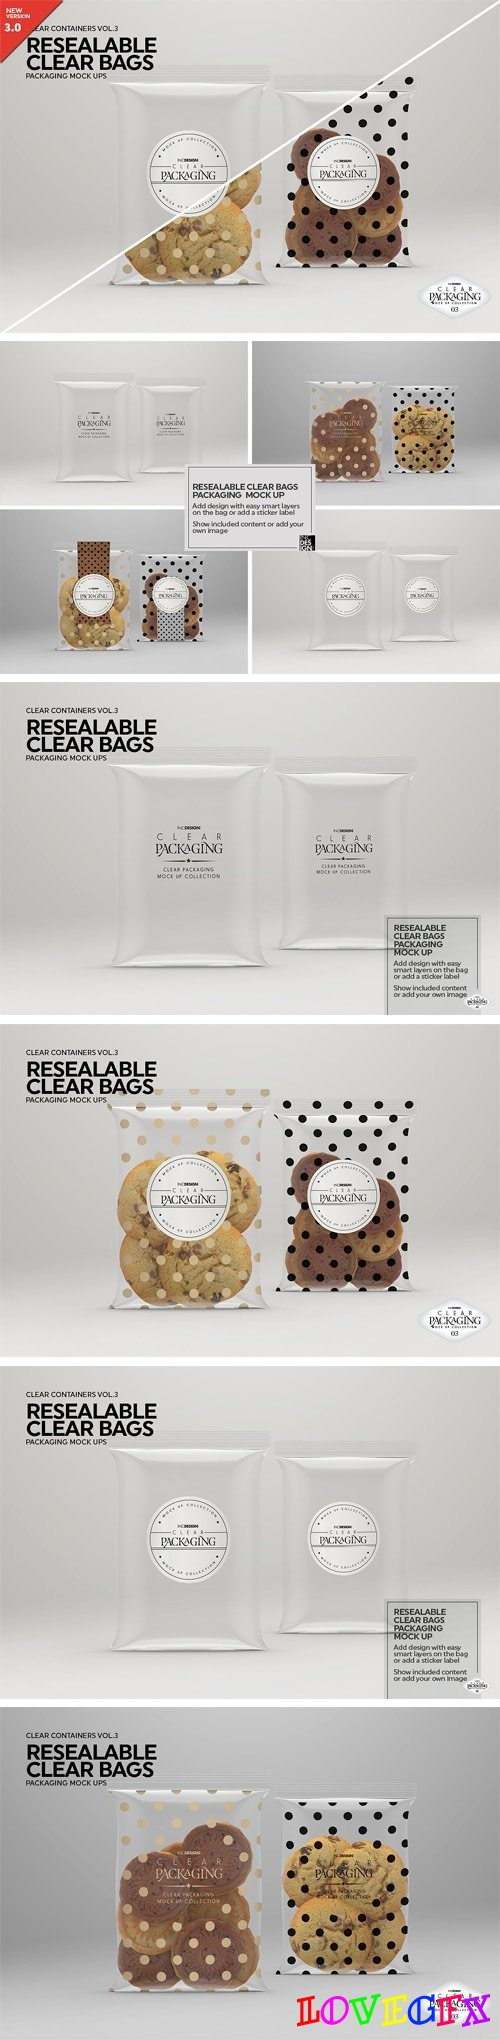 Clear Resealable Bags MockUp 2022770